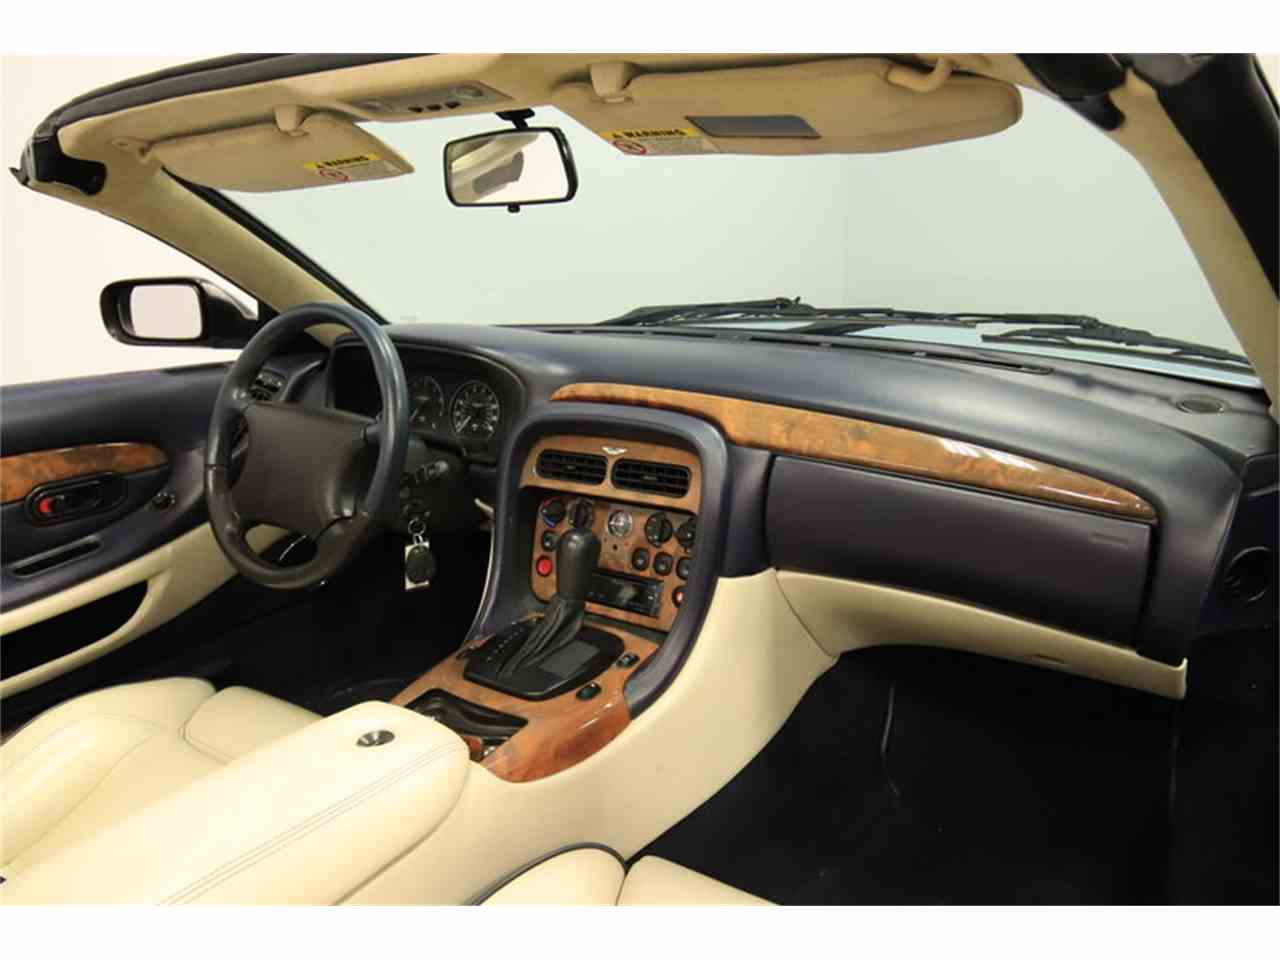 Large Picture of 2000 Aston Martin DB7 Vantage Volante located in Mesa Arizona Offered by Streetside Classics - Phoenix - M73B